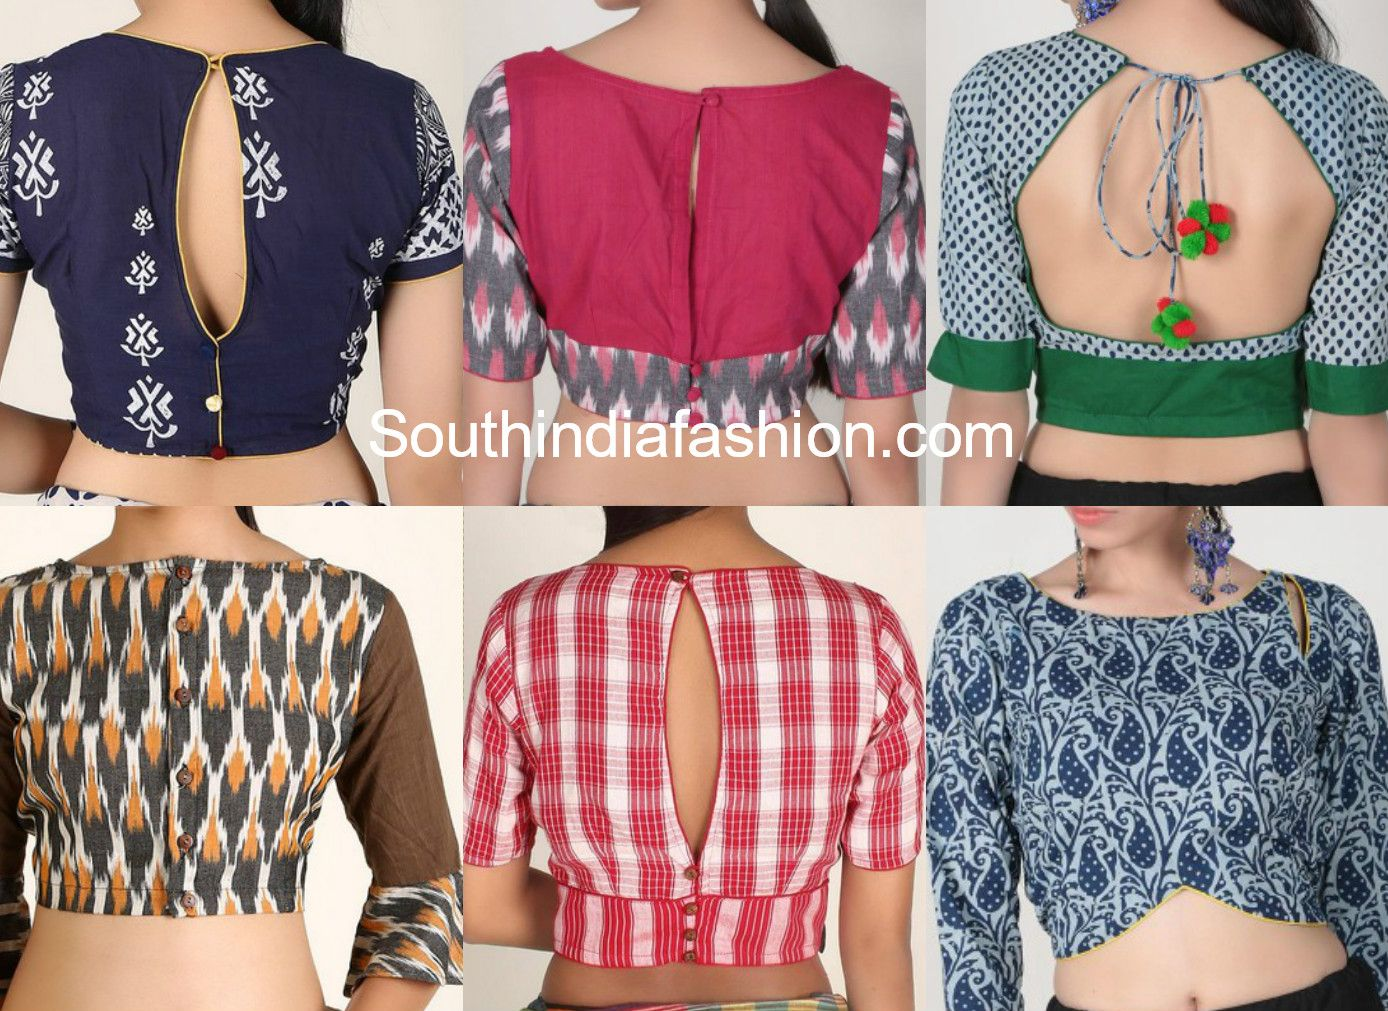 5bfeab54c374d Latest and stylish cotton saree blouse designs to try out this summer. The  current trend is to wear unique stylish designer blouses with simple  regular ...